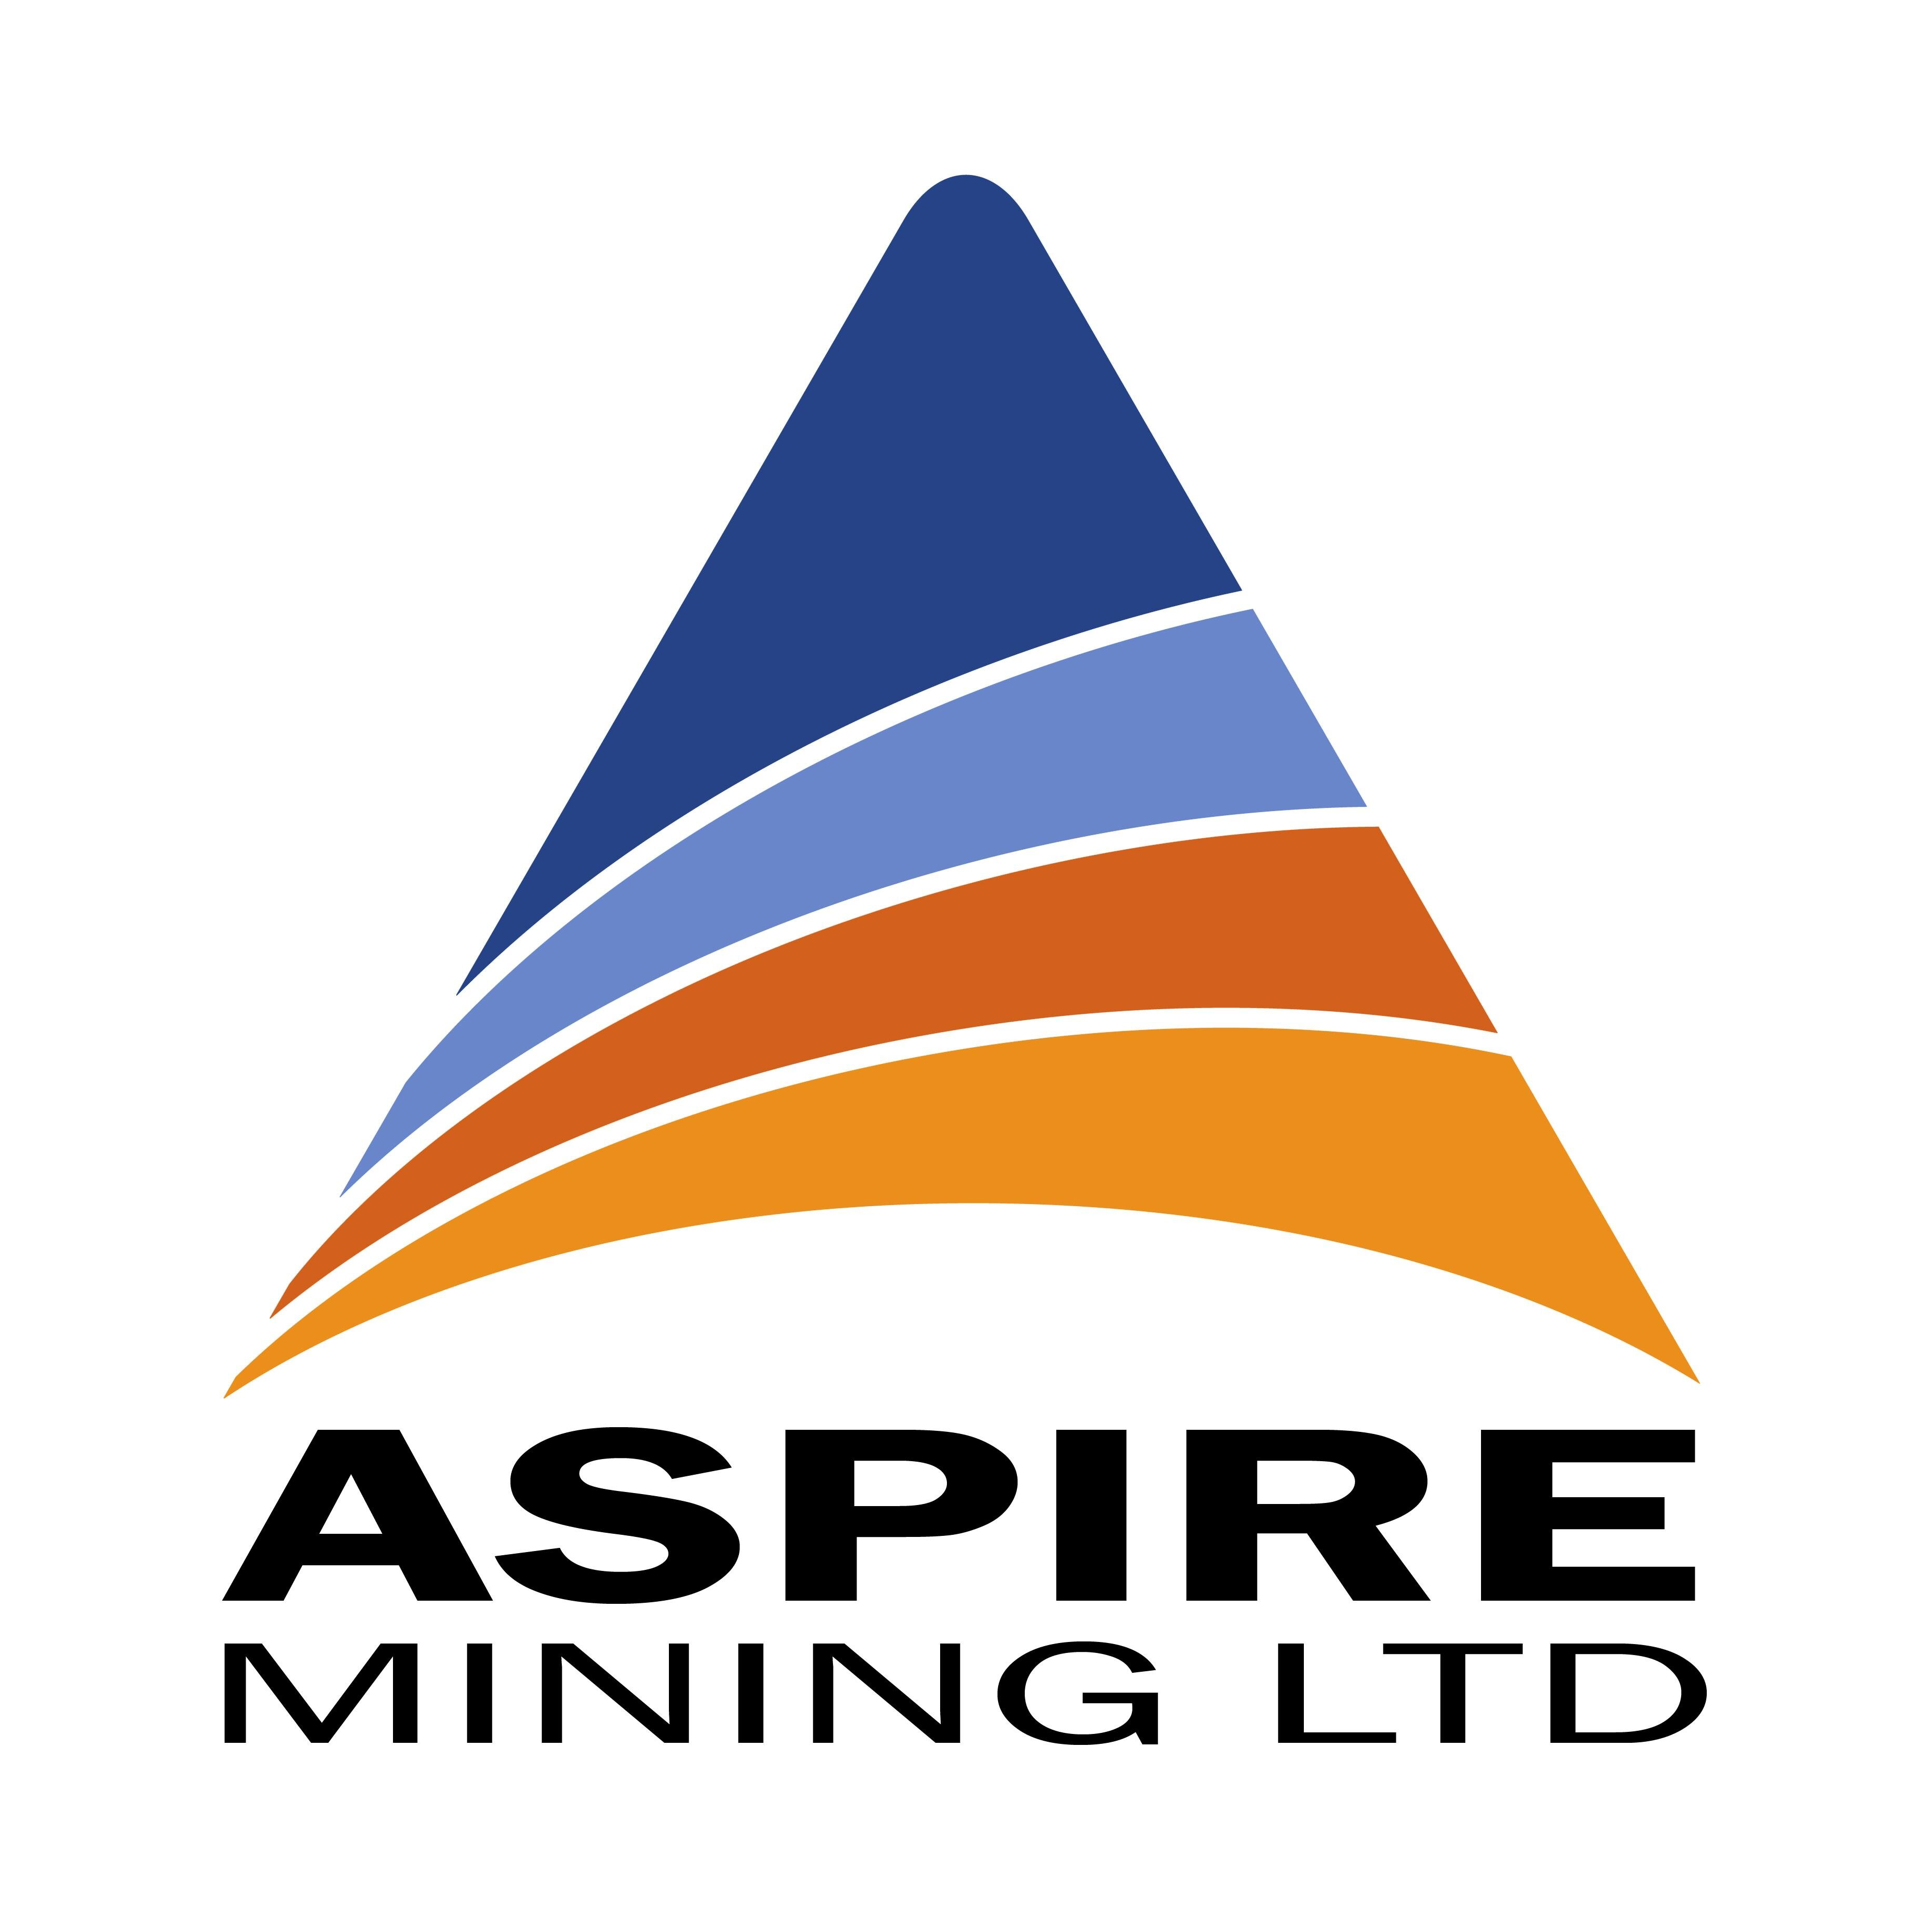 ASPIRE MINING LIMITED